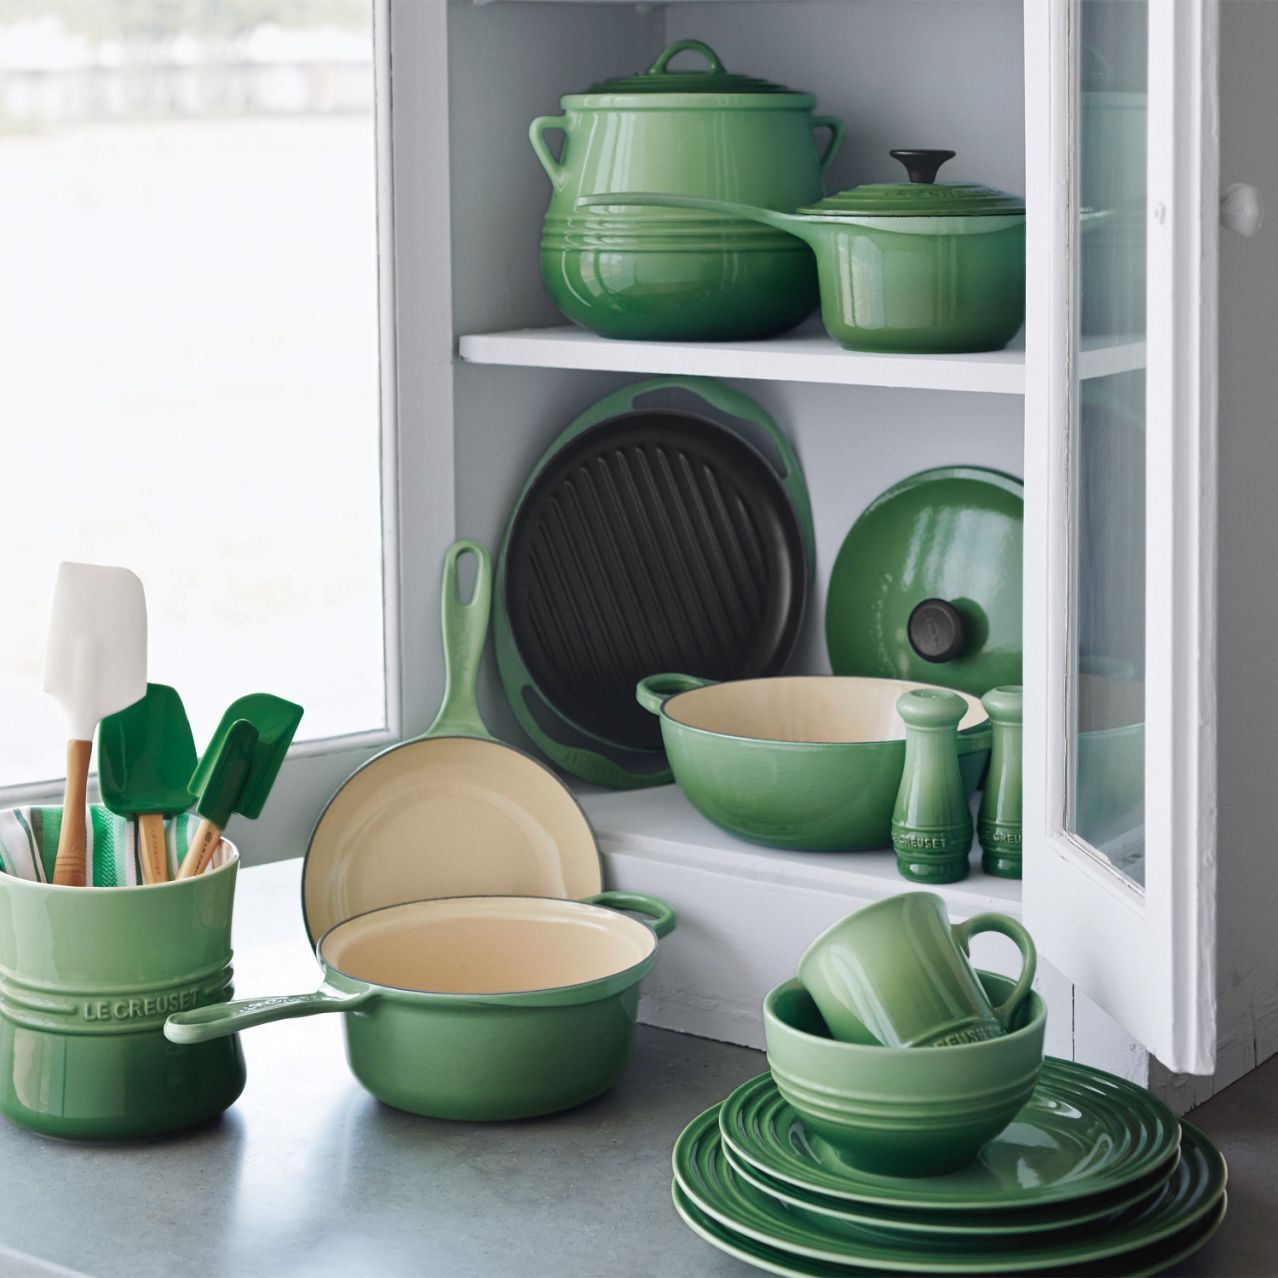 Kitchen Dishes Sets: Le Creuset Rosemary Dinnerware Set